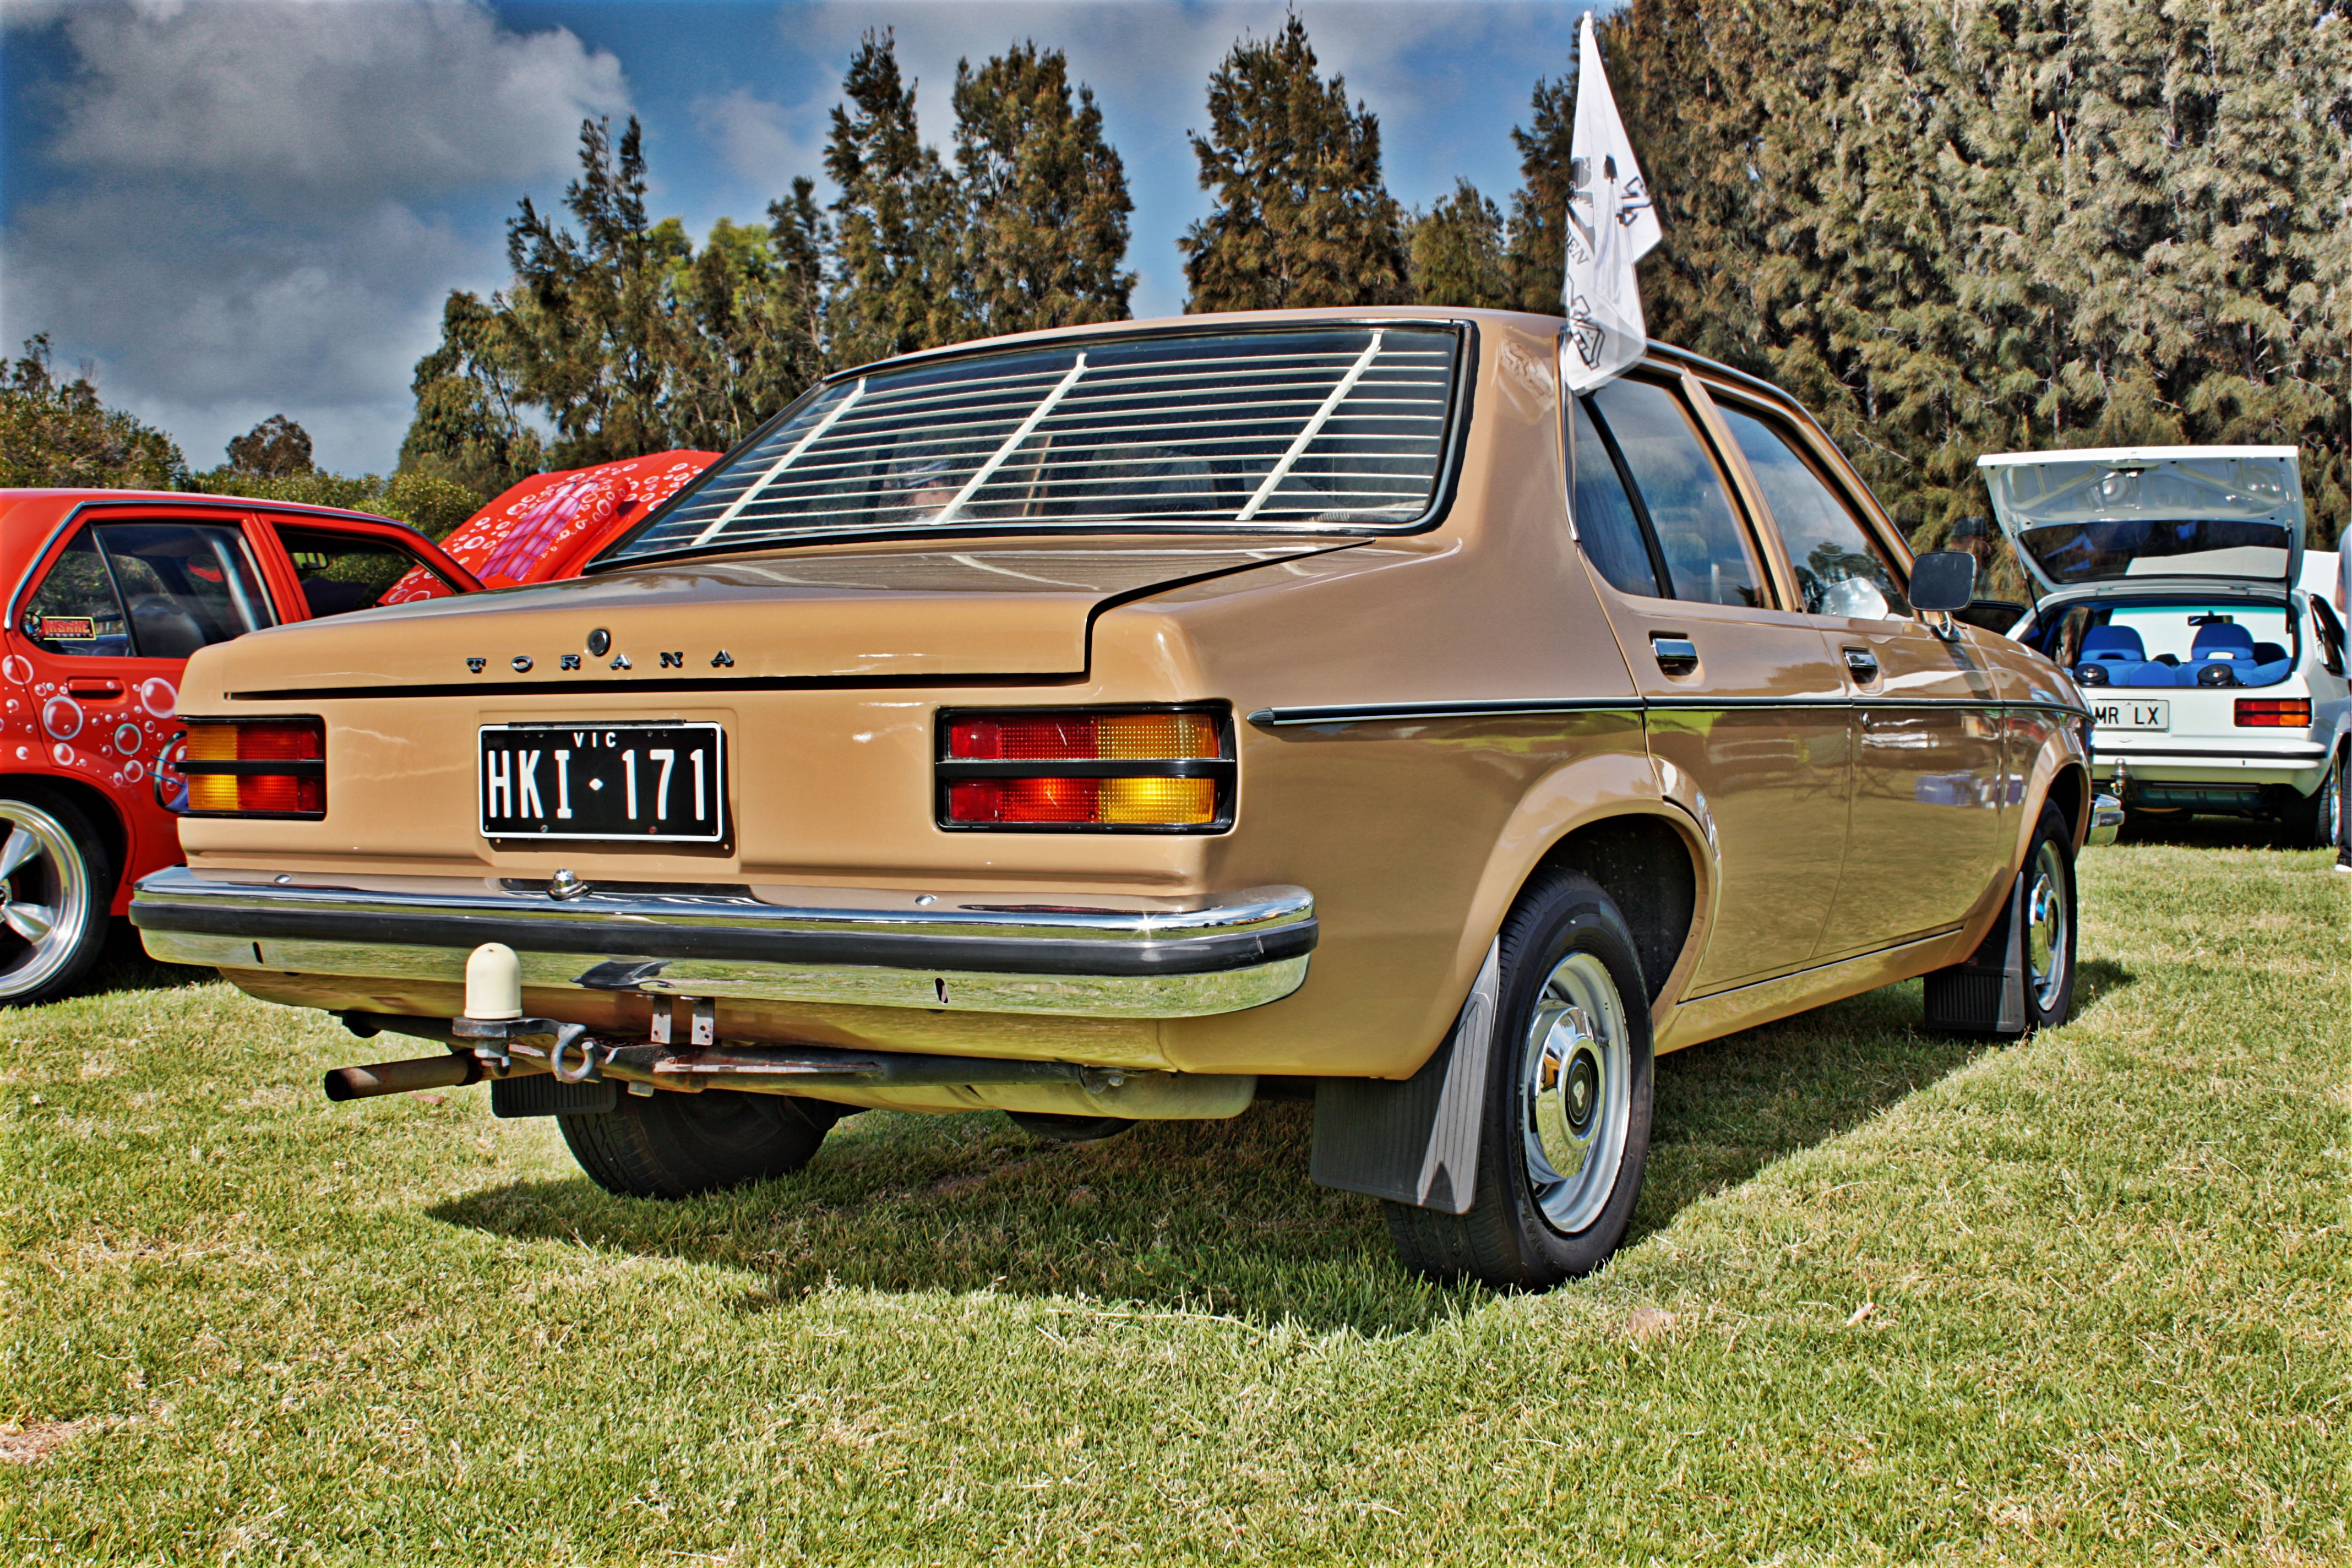 Baby Store Campbelltown Photographic Images Of Classic General Motors Automobile